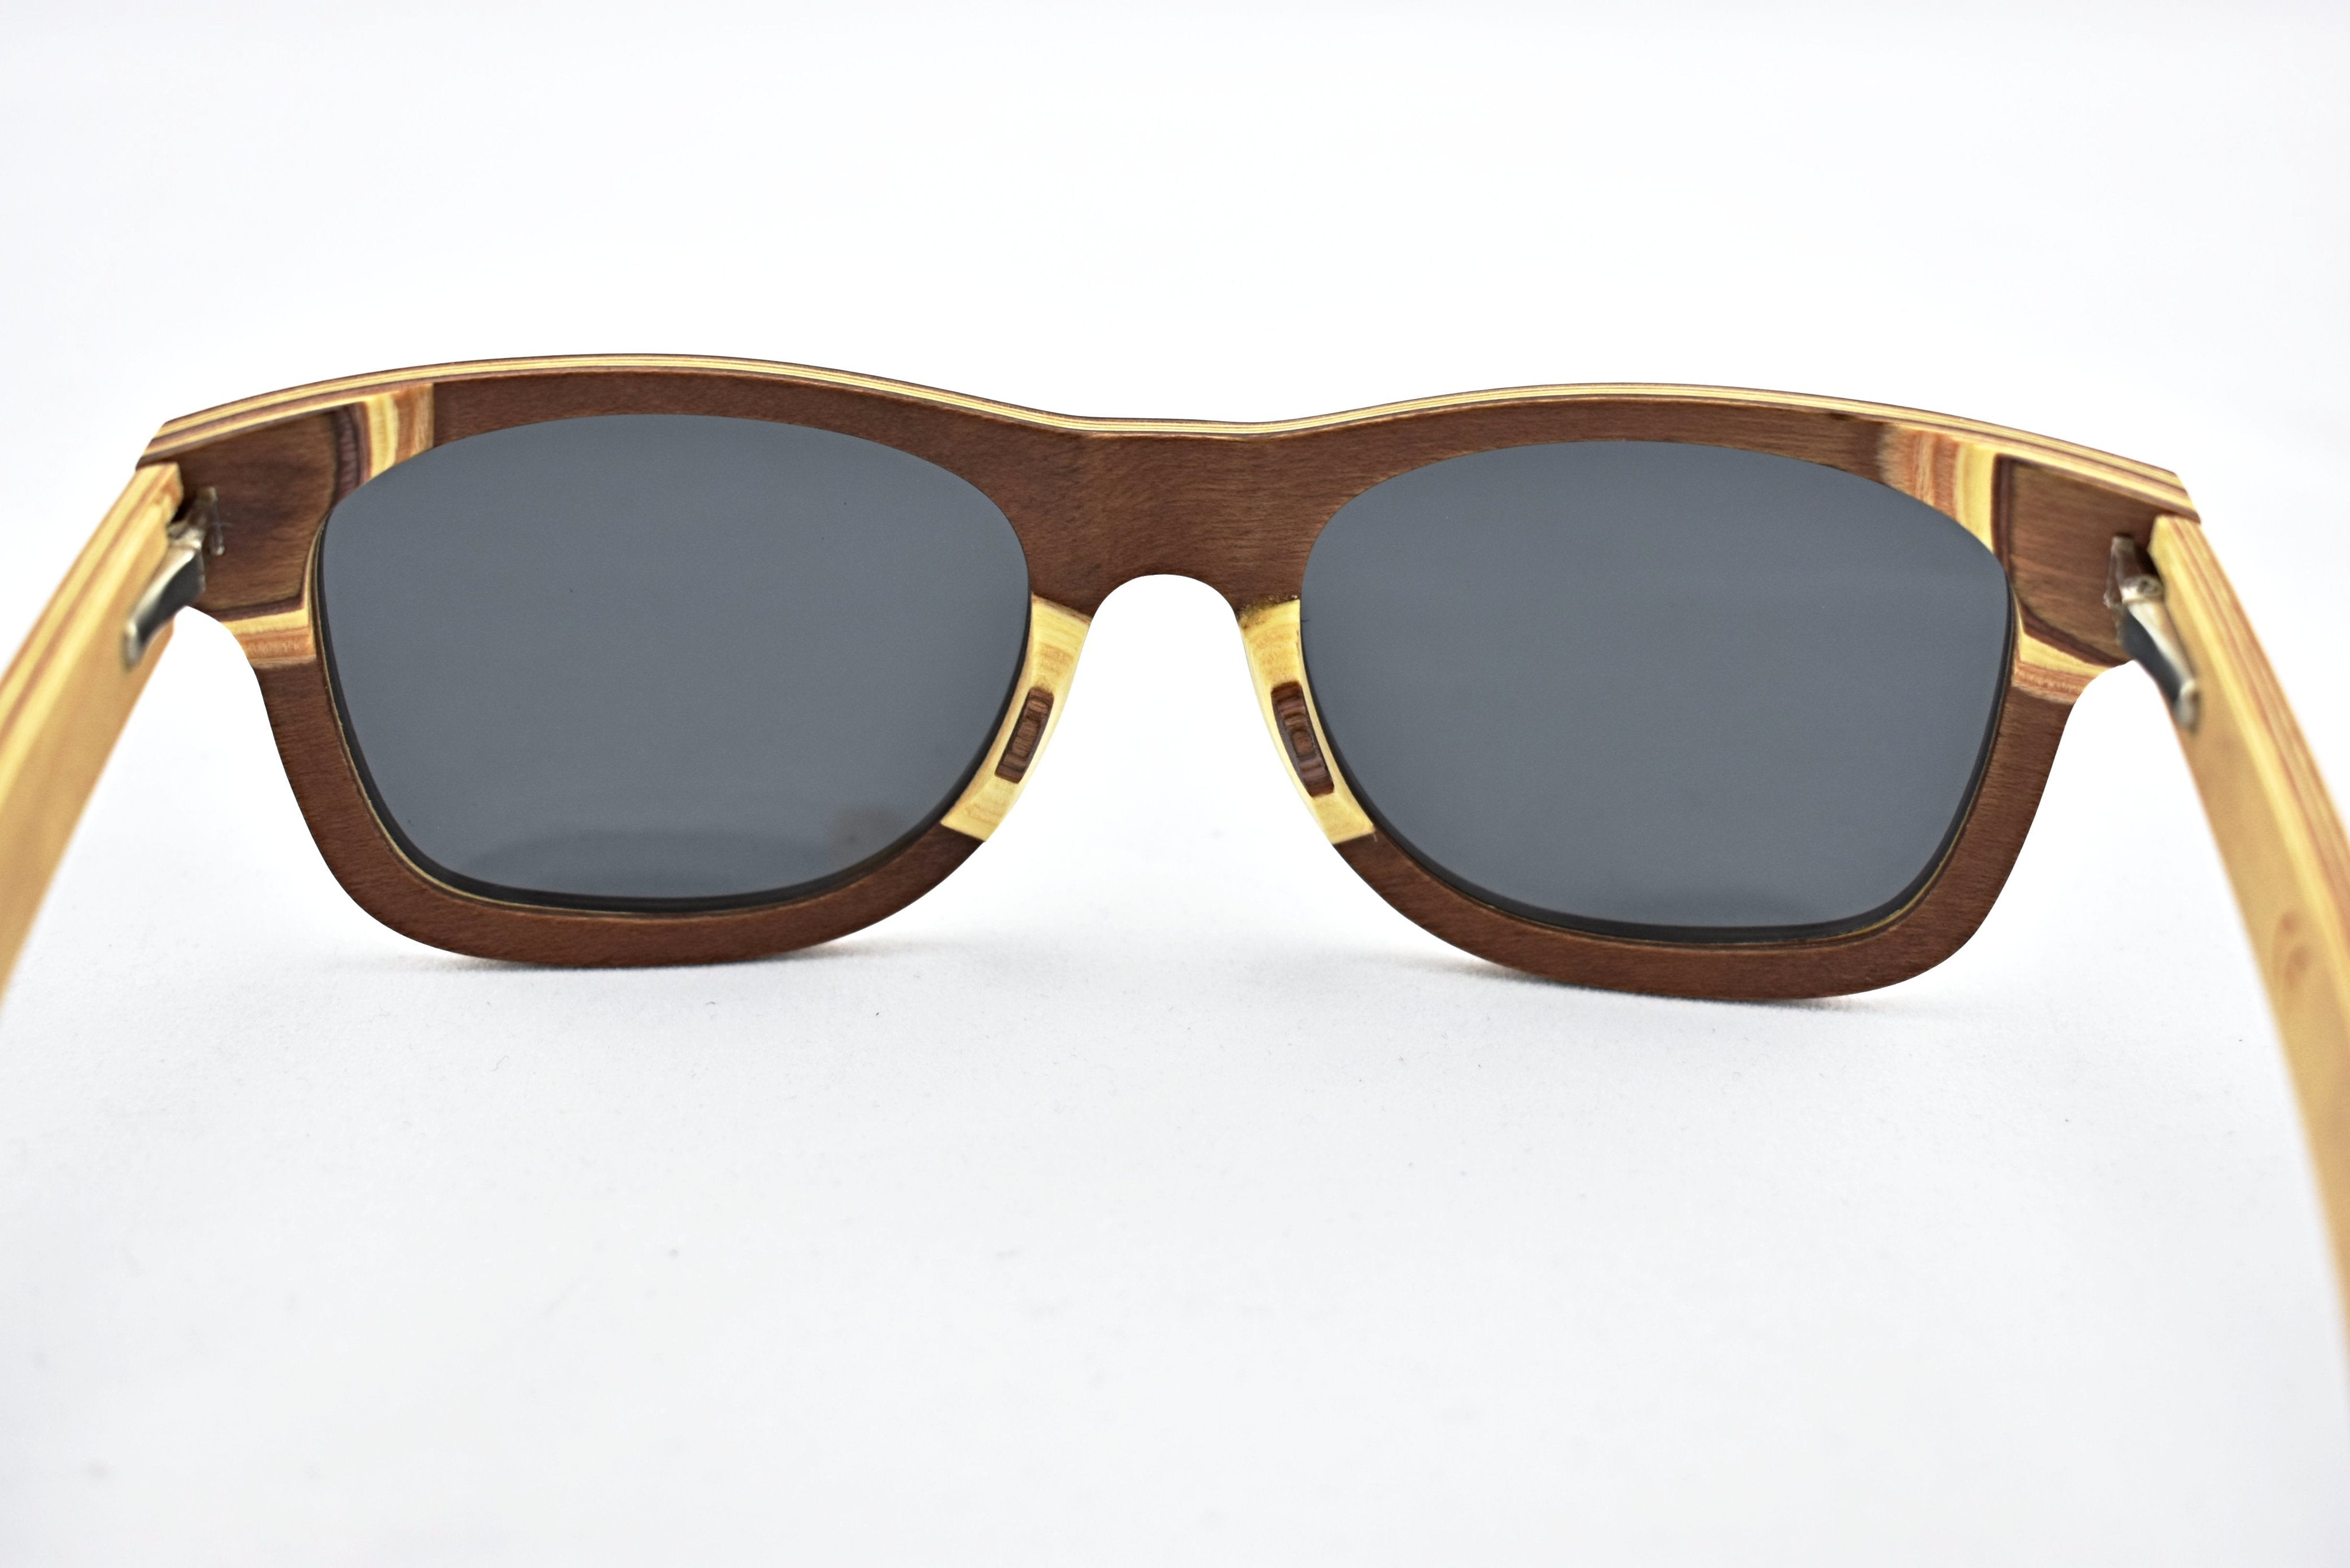 753c02f6e706 Duwood Wooden Sunglasses For Men And Women